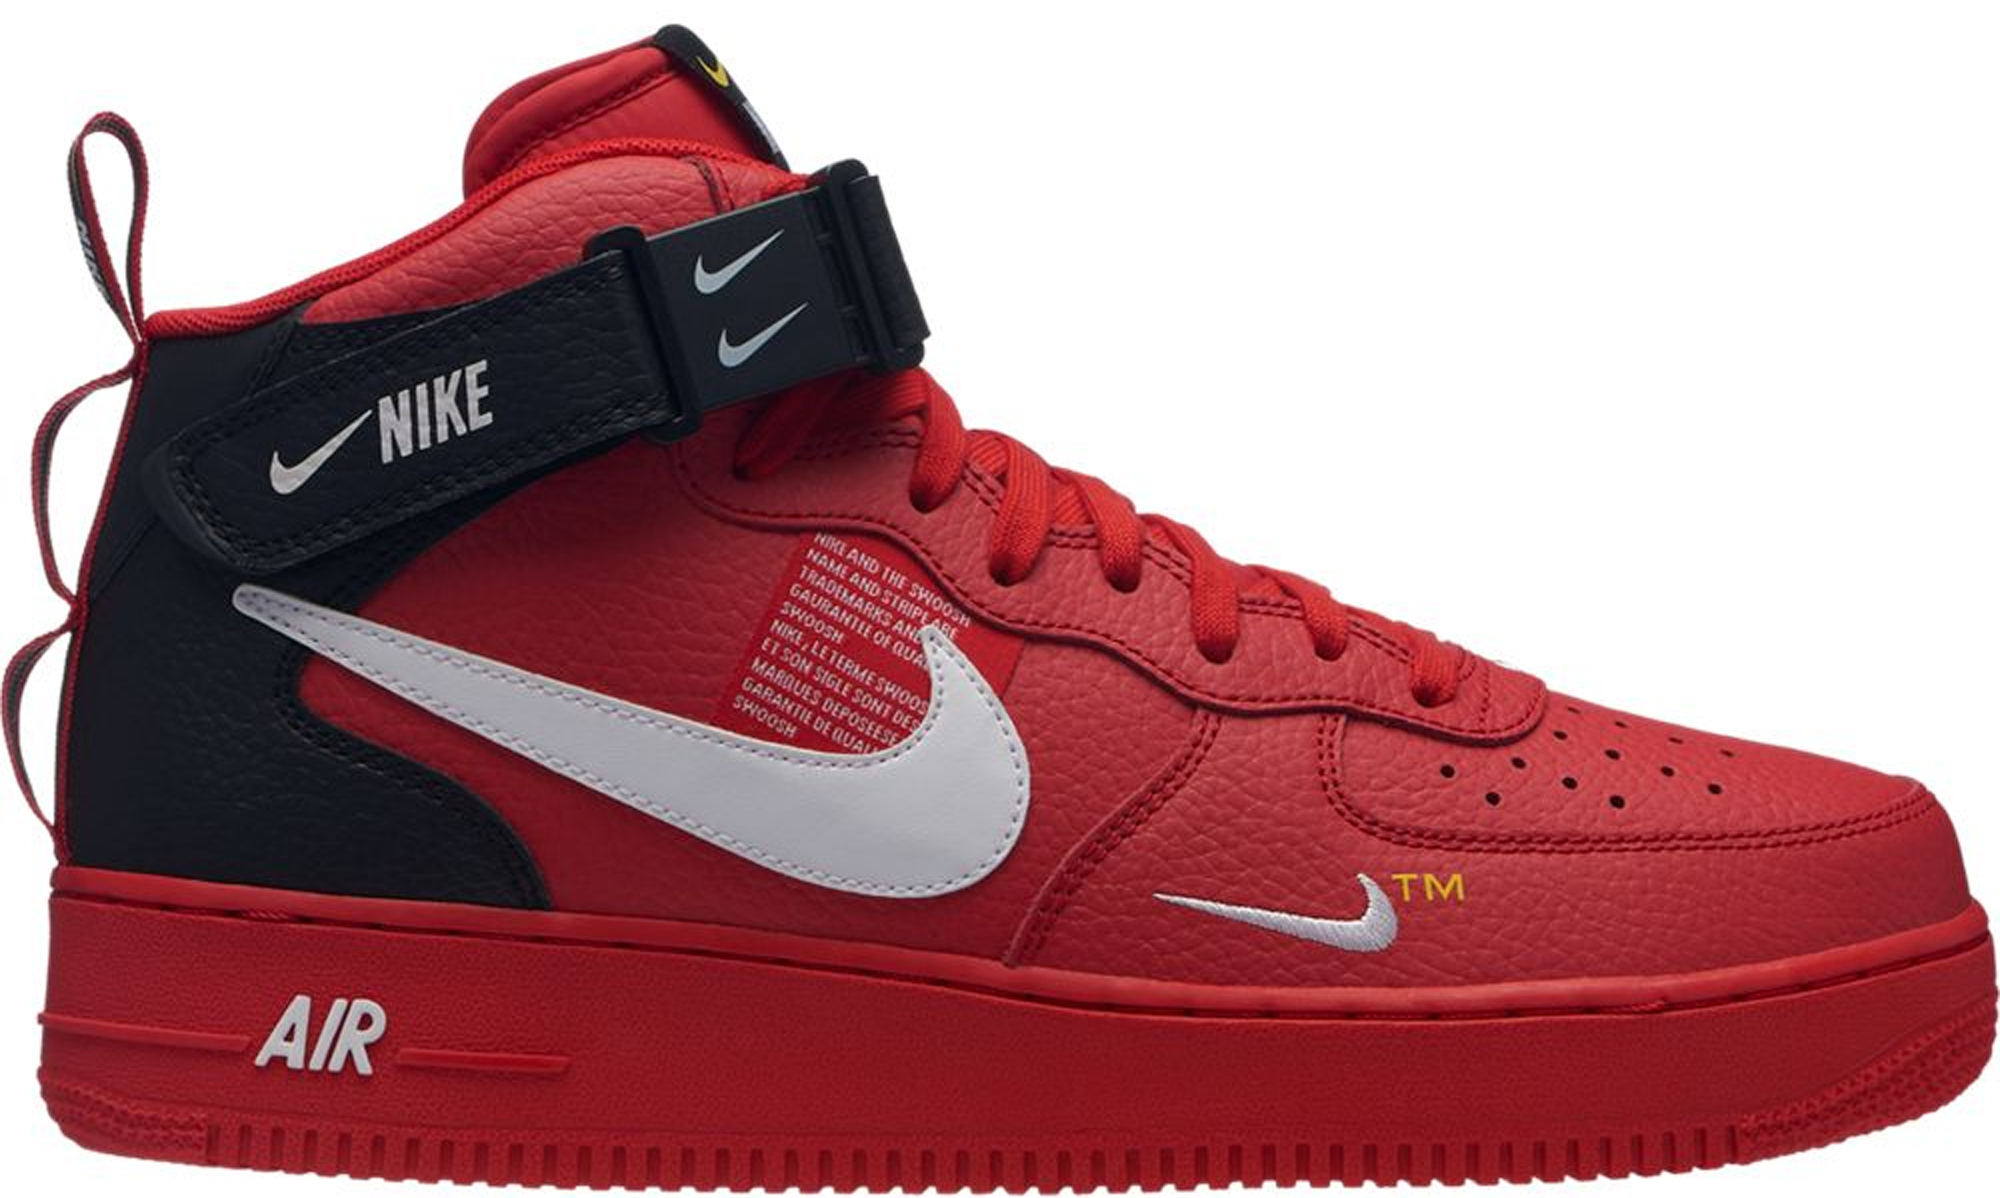 Buy Nike Air Force 1 Shoes Deadstock Sneakers